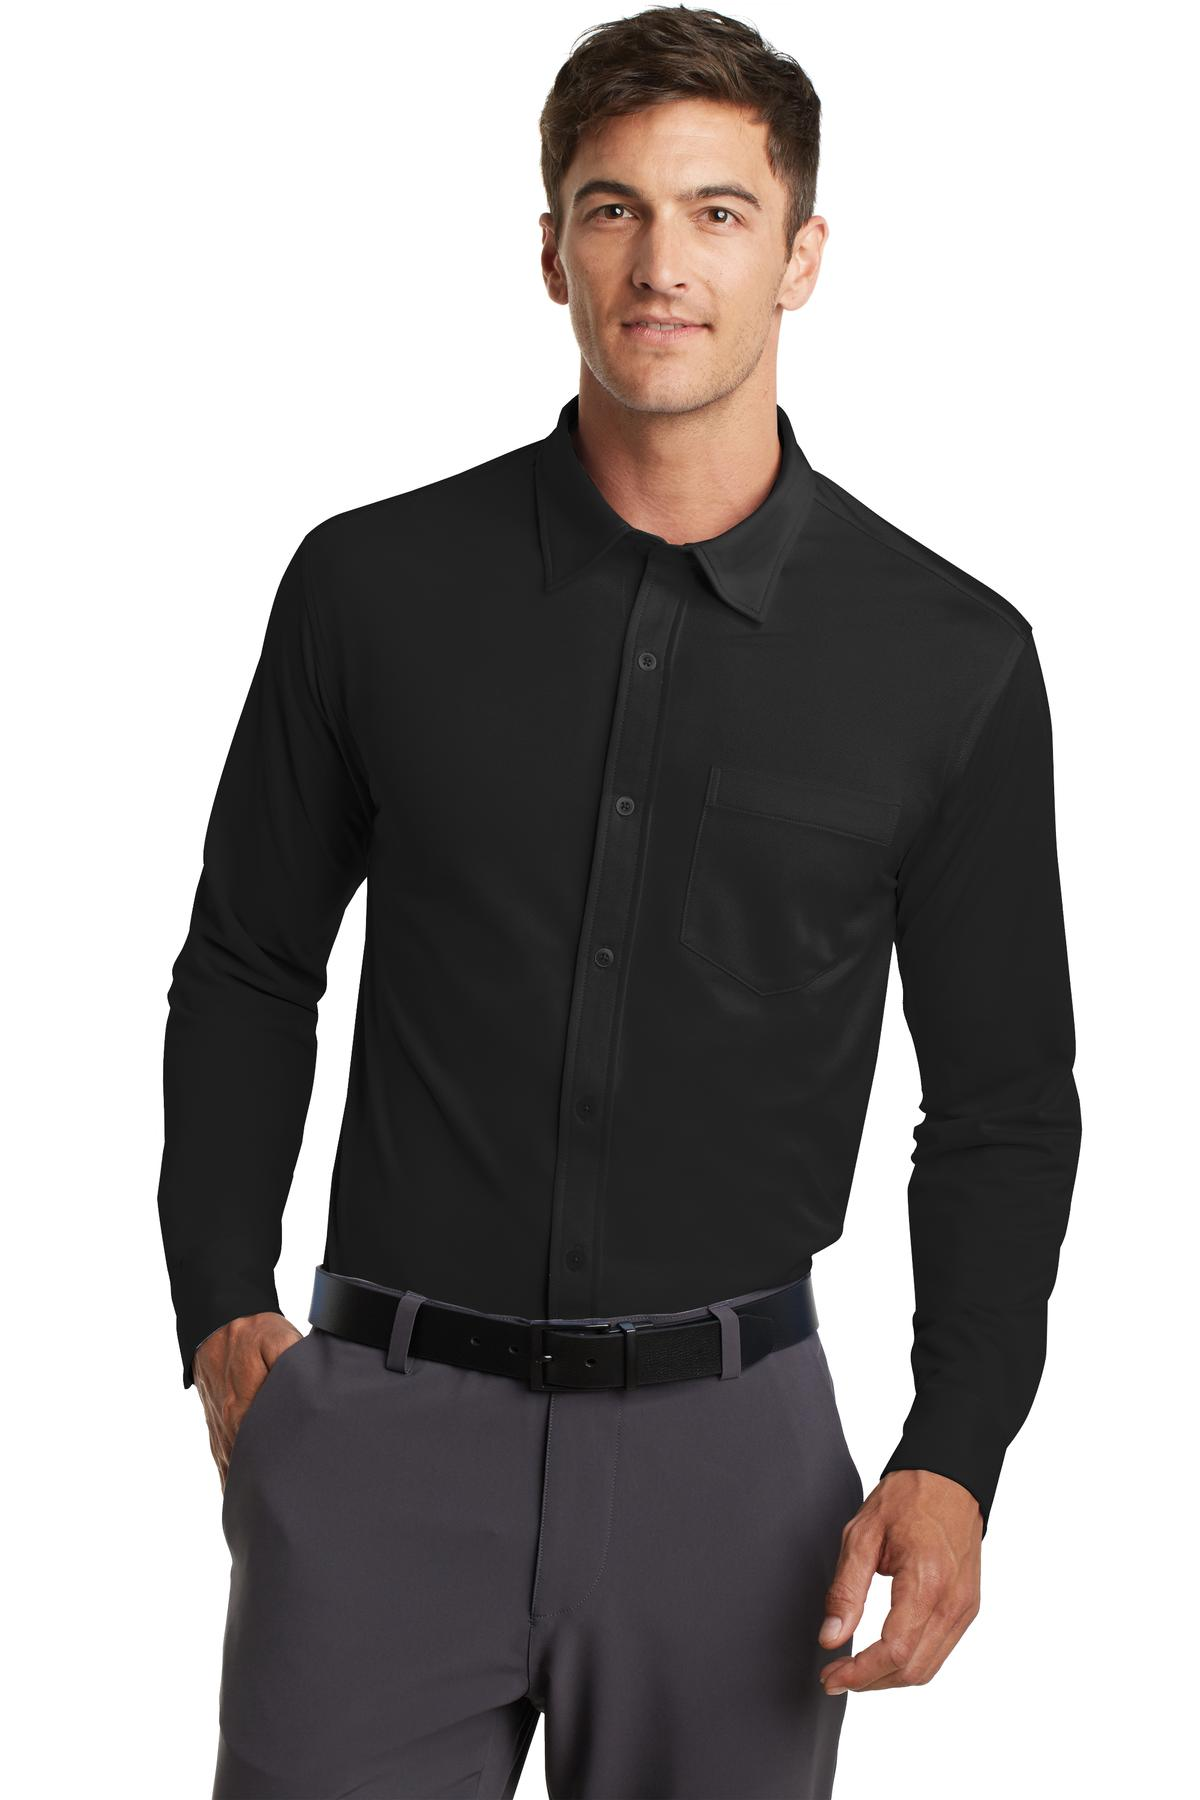 Port Authority® K570 - Dimension Knit Dress Shirt - Men's Woven Shirts